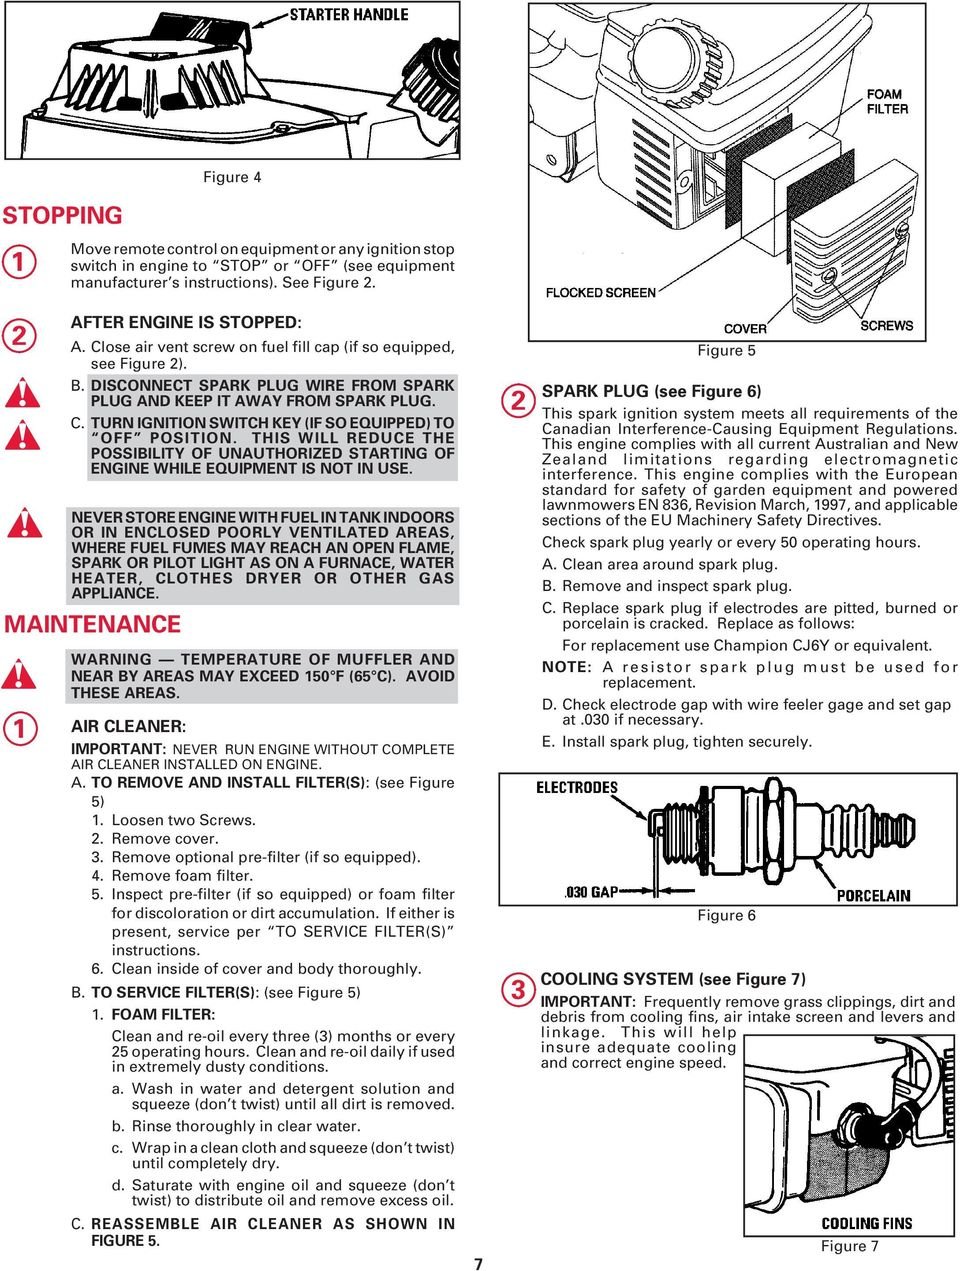 Operating Parts Manual 20 Hp Pdf Air Pressor Mag Ic Starter Wiring Diagram On Champion Compressor Turn Ignition Switch Key If So Equipped To Off Position This Will Reduce